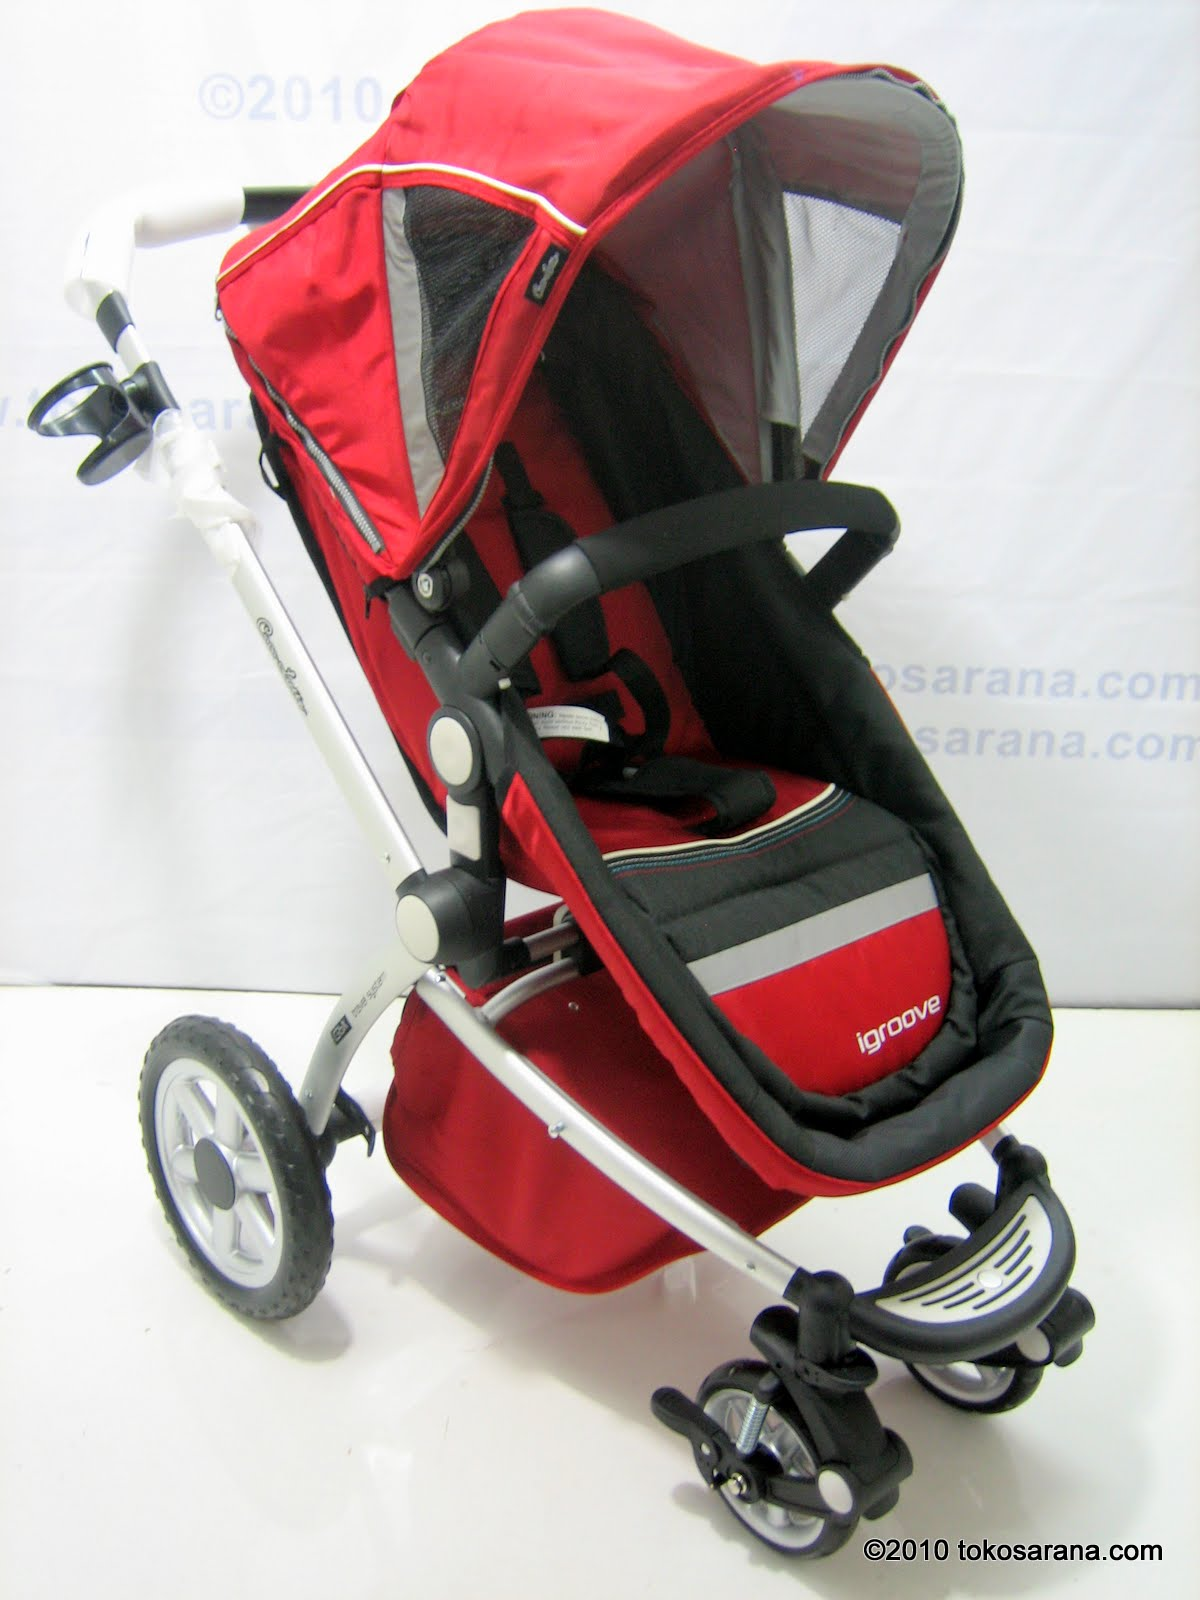 Tokomagenta A Showcase Of Products Baby Stroller And